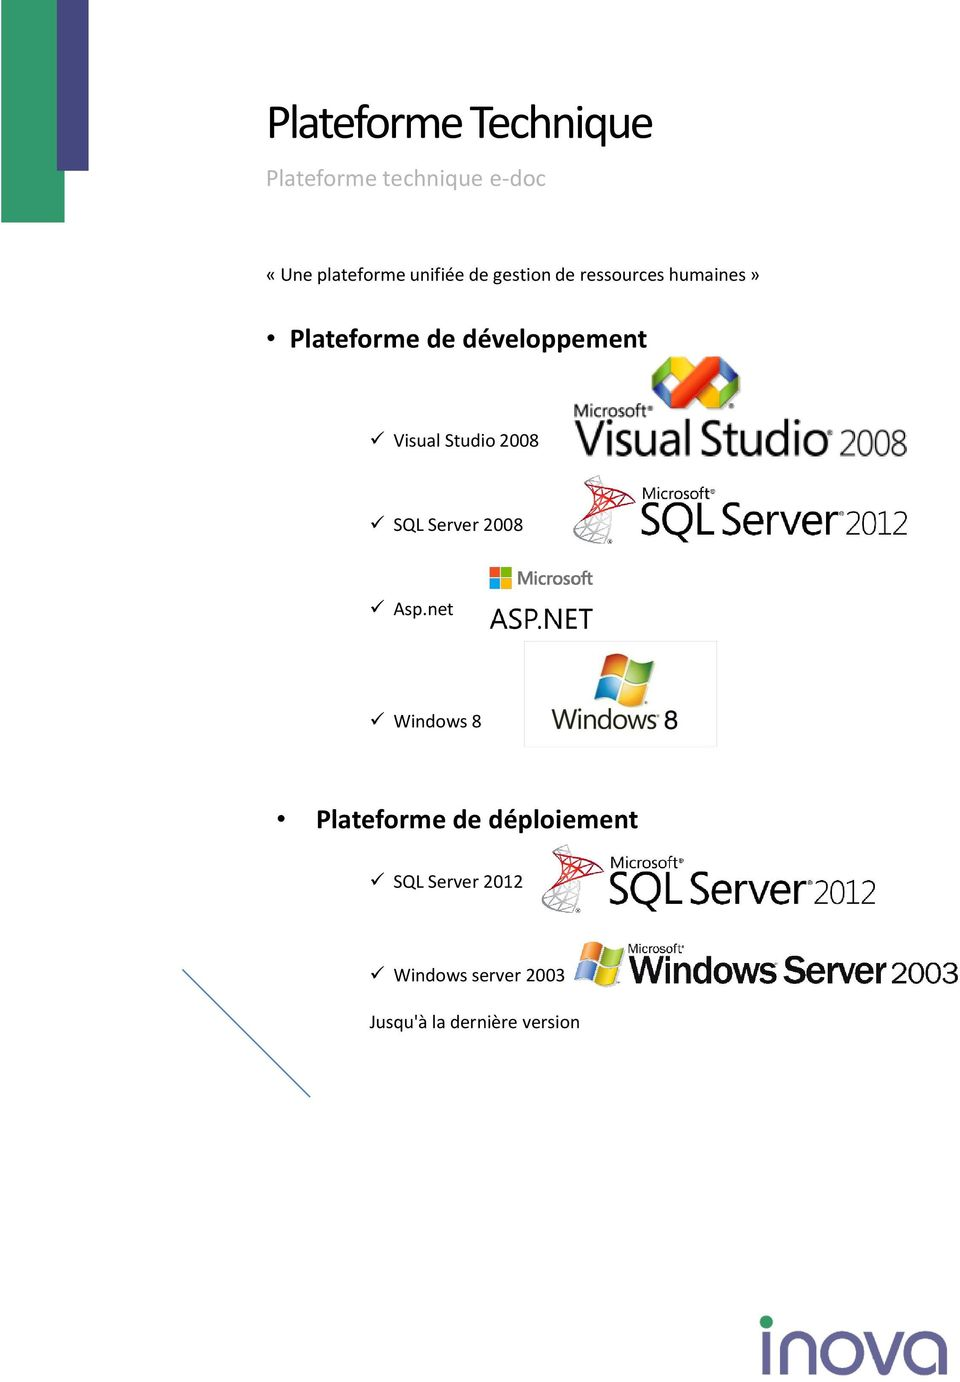 développement Visual Studio 2008 SQL Server 2008 Asp.